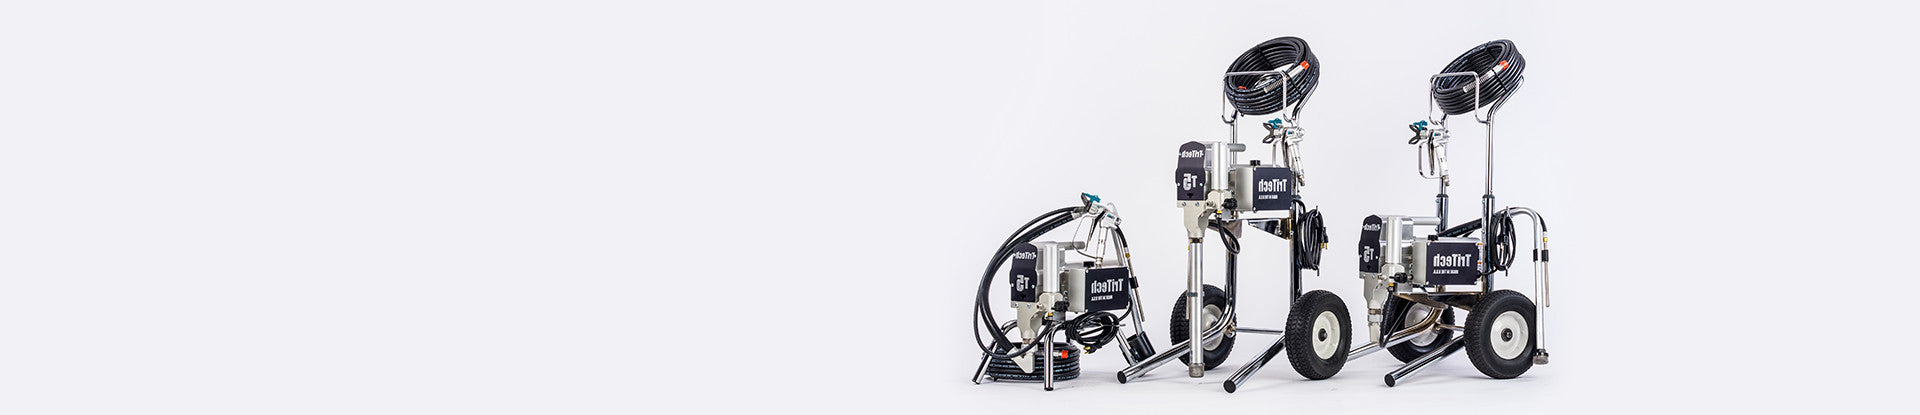 Full range of TriTech airless sprayers